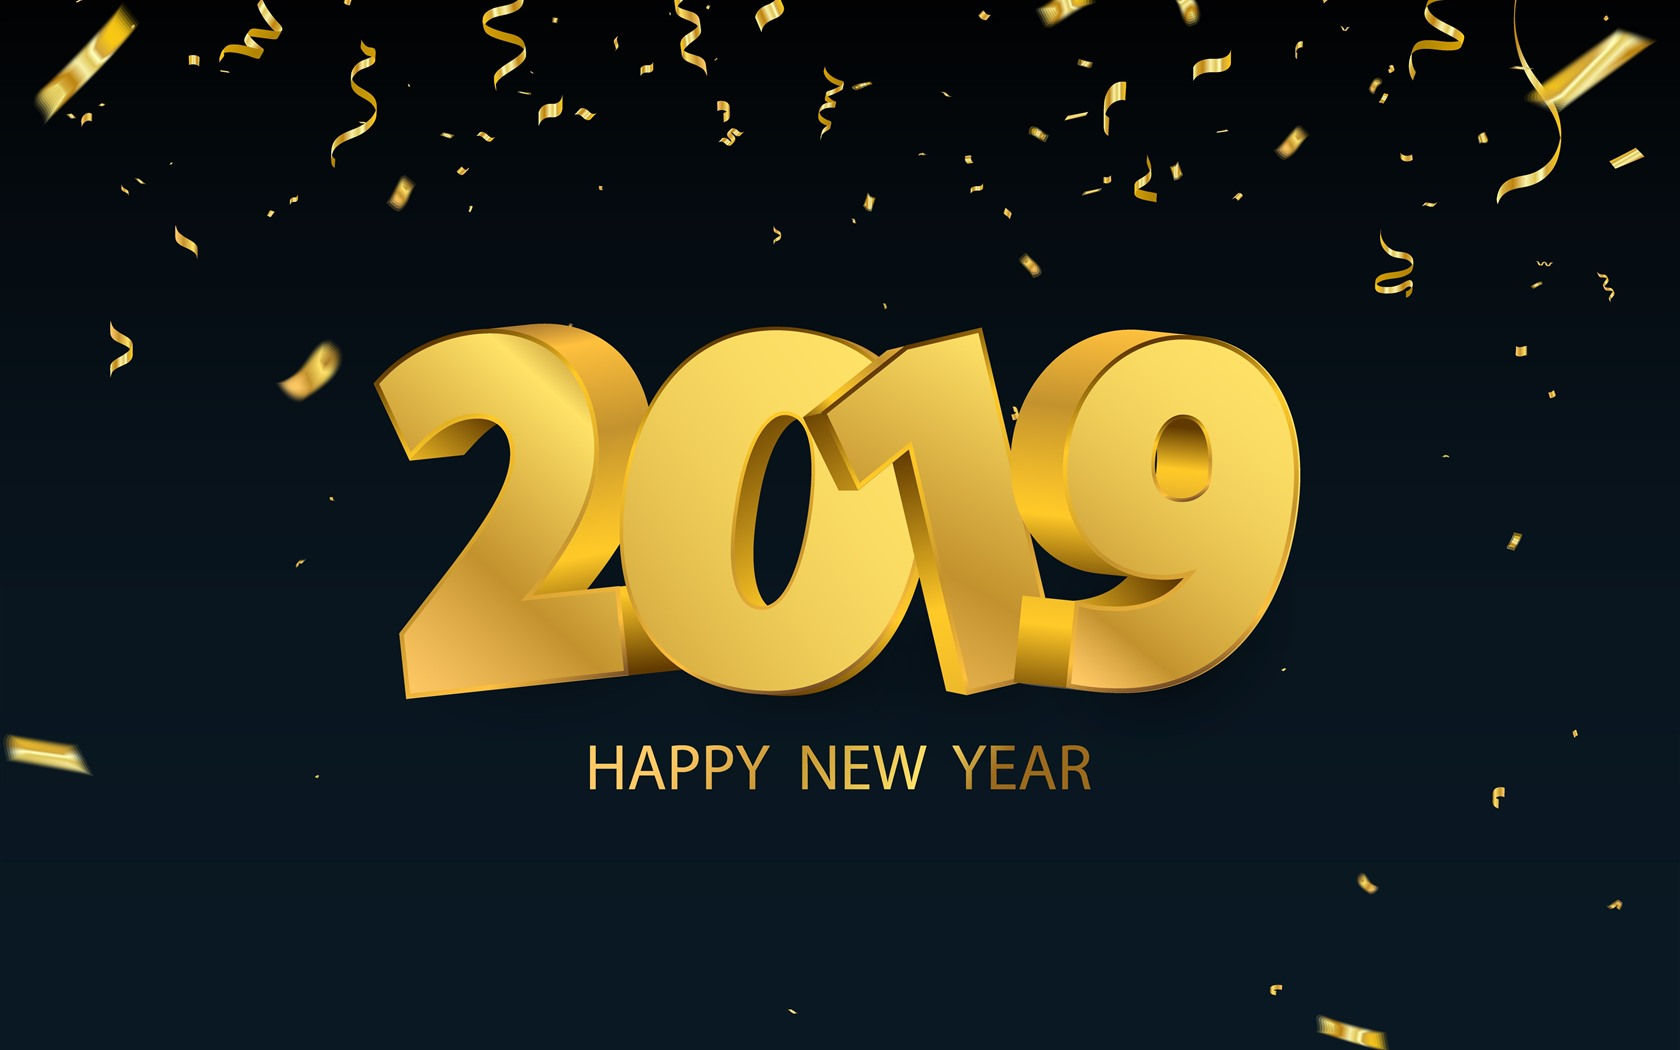 Happy New Year 2019, golden style 1242x2688 iPhone XS Max